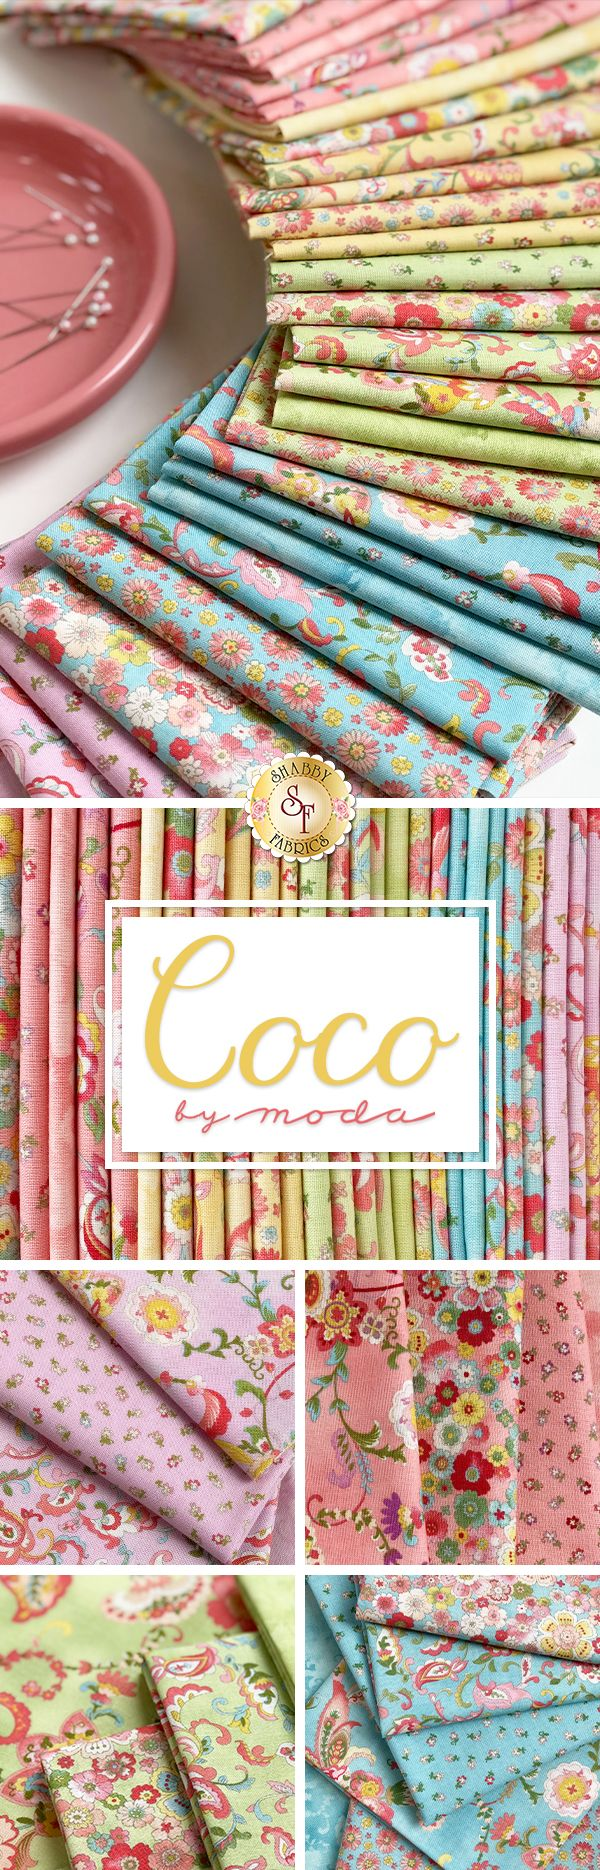 Coco is a colorful summer collection by Chez Moi for Moda ...